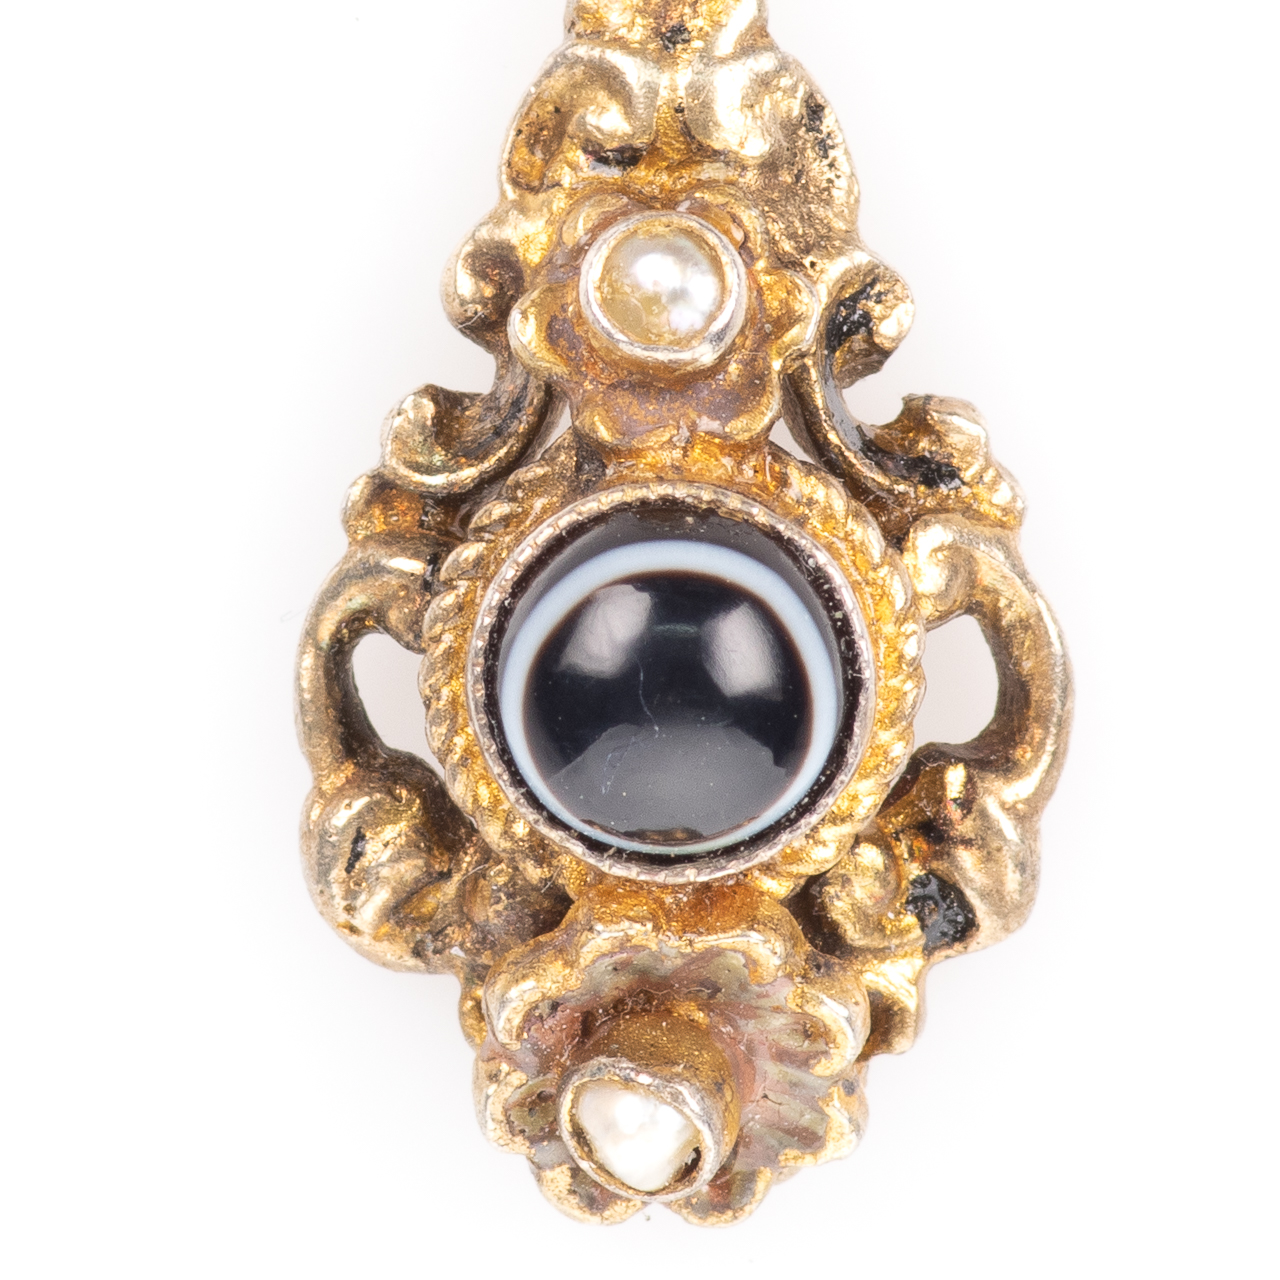 Momento Mori Pinchbeck Pearl & Banded Agate Victorian Pendant - Image 3 of 4